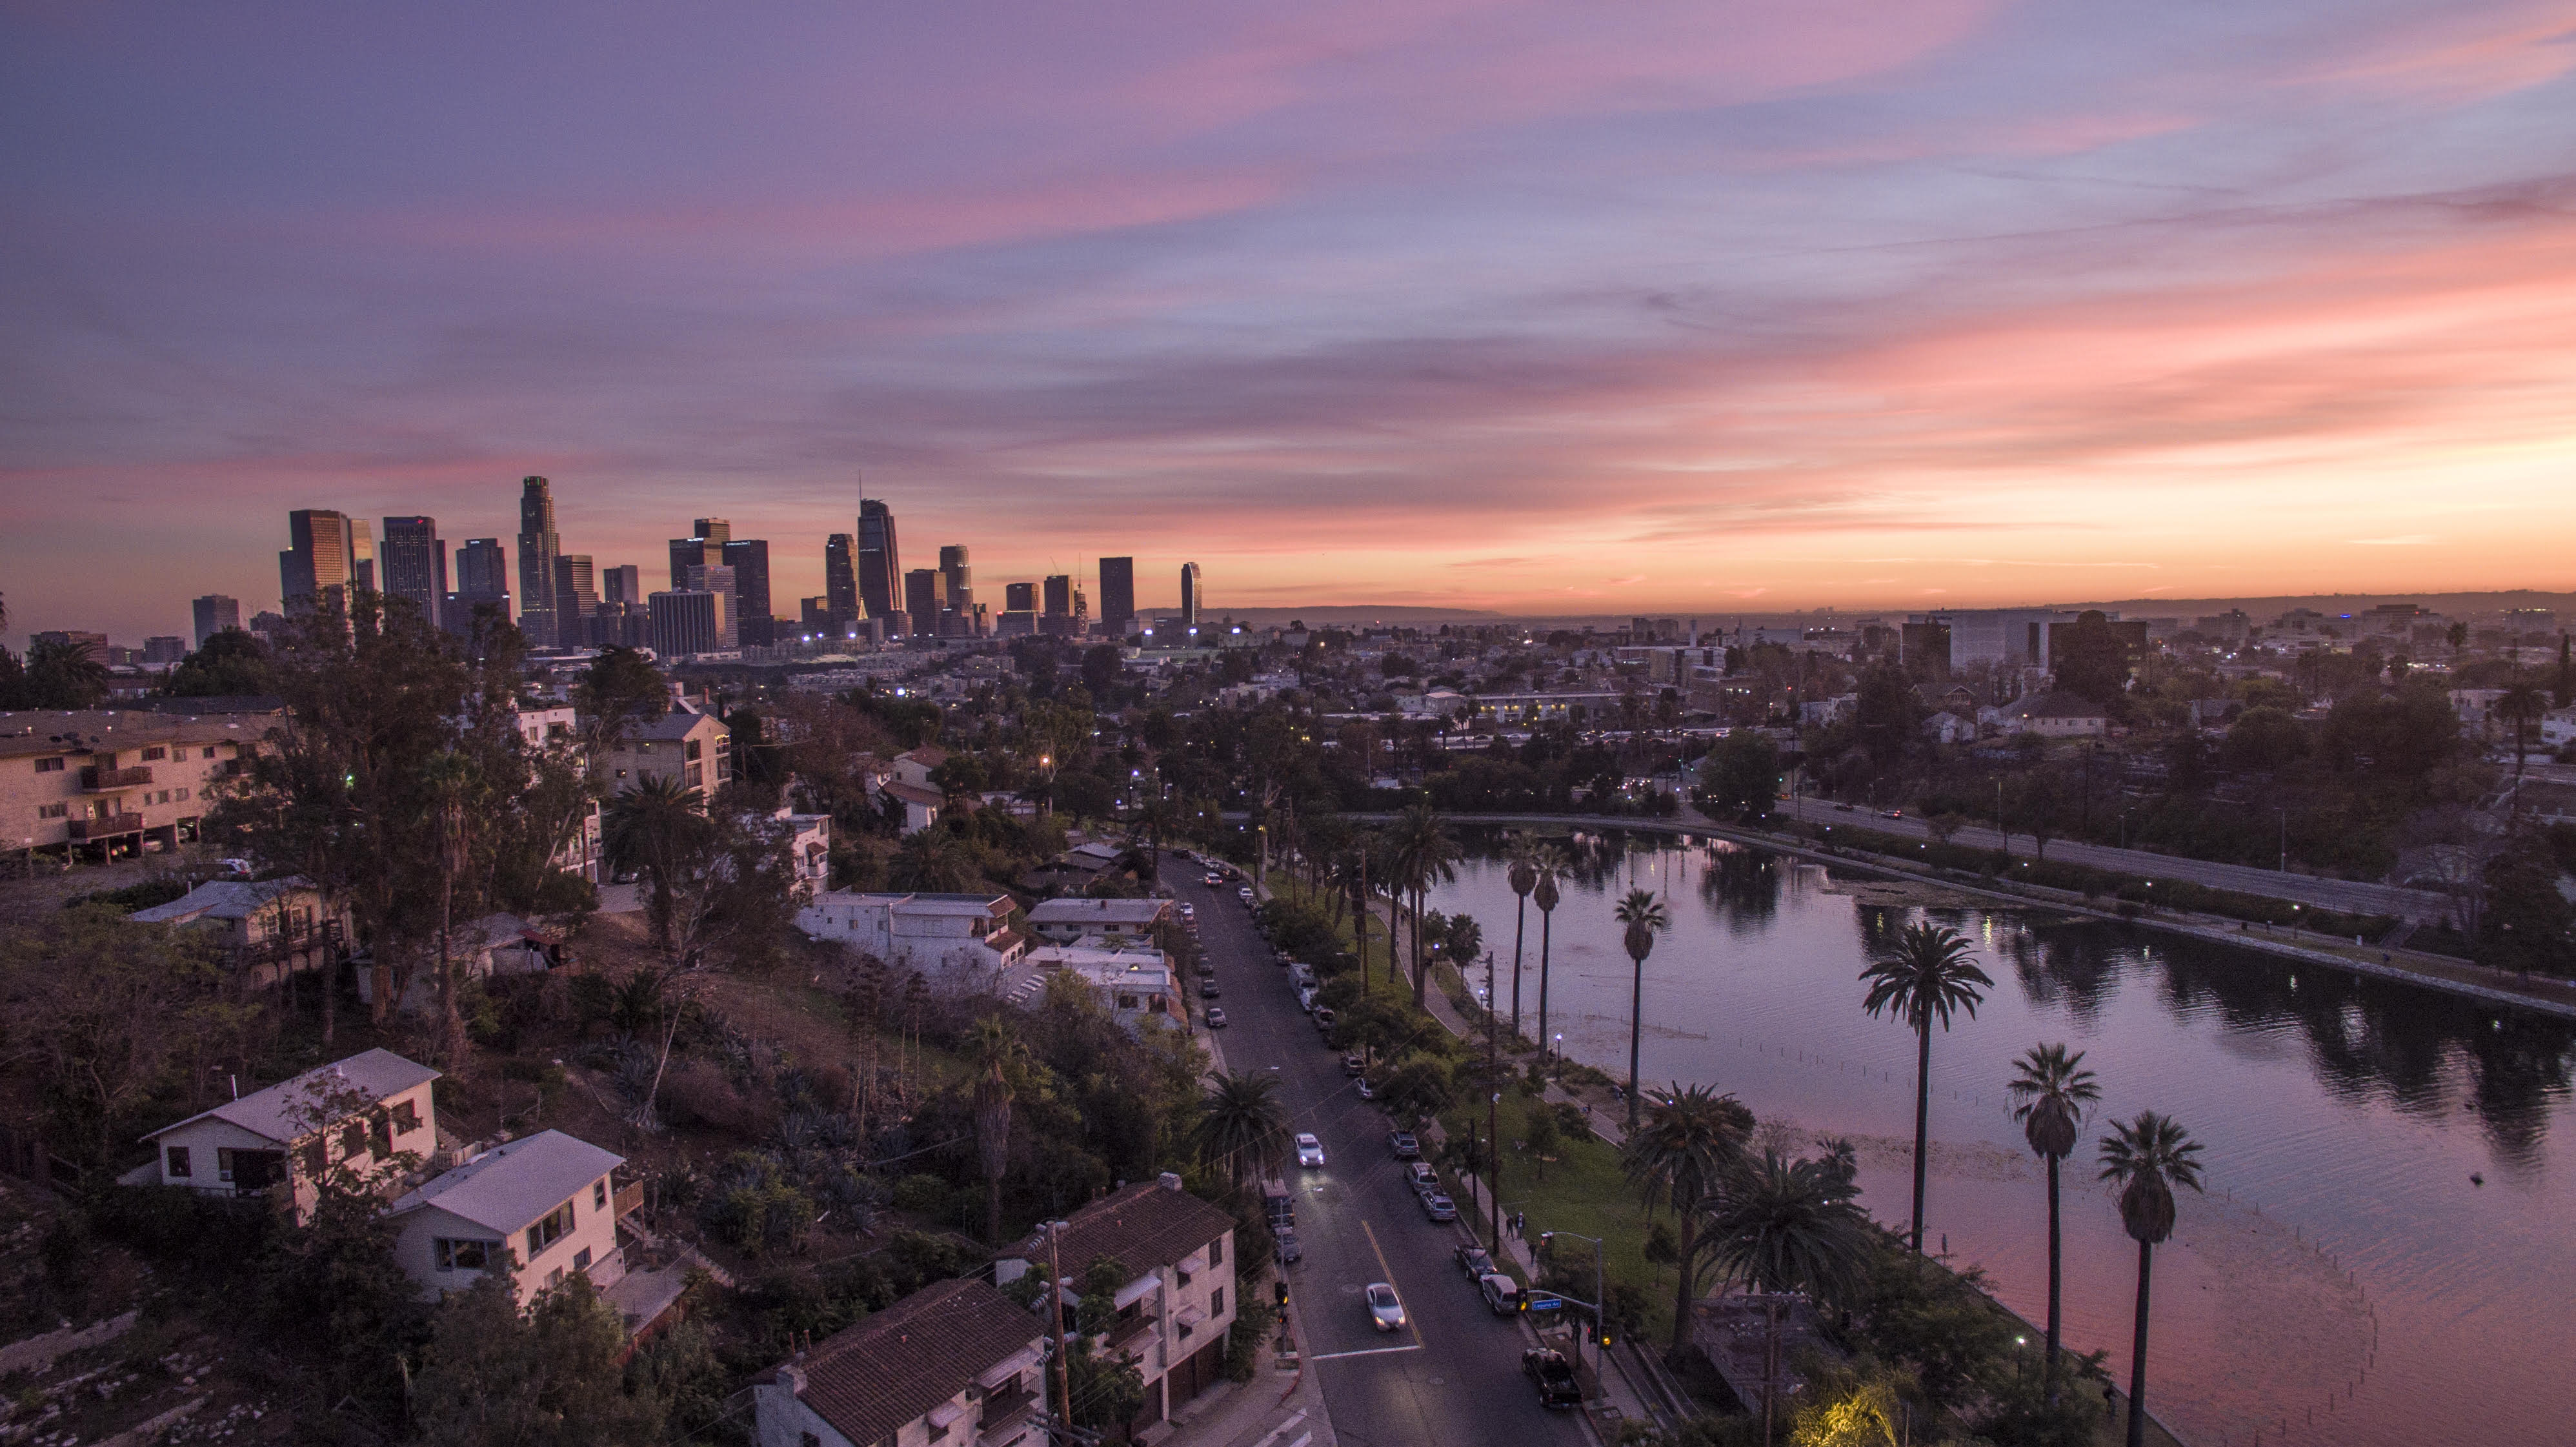 echo_park_lake_with_downtown_los_angeles_skyline.jpg